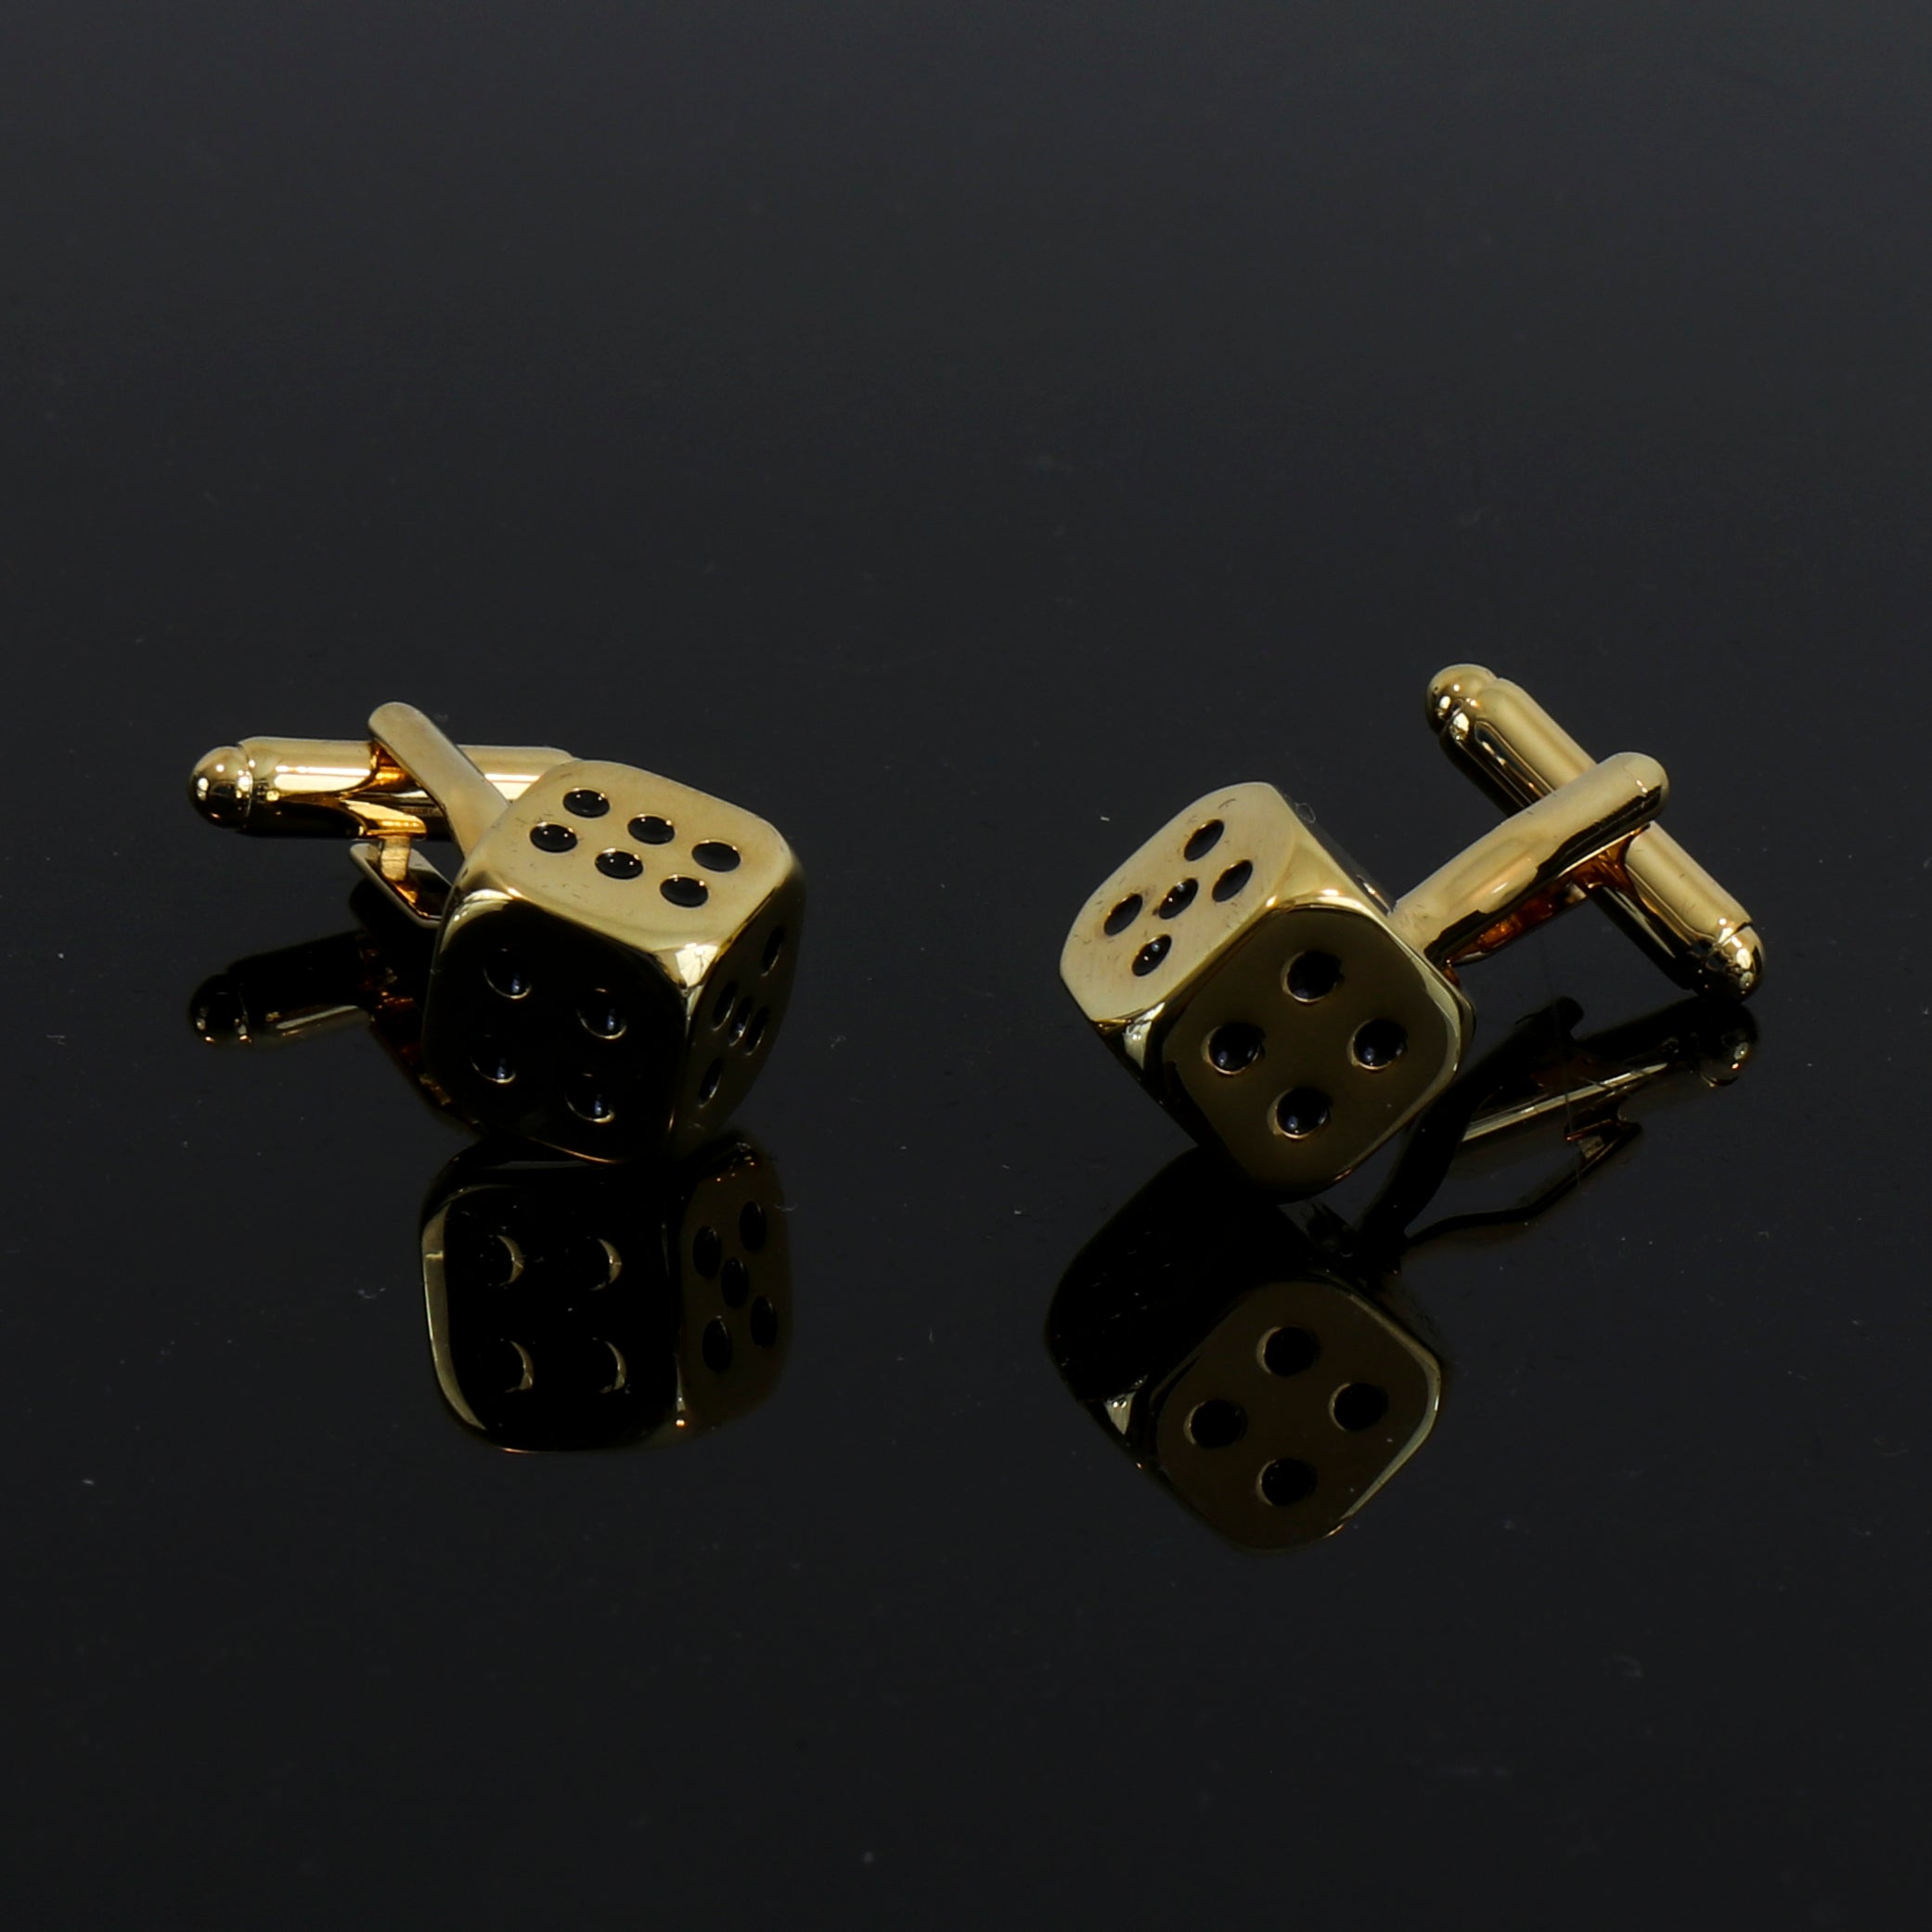 Men's Stainless Steel Gold Dice Cufflinks with Box - Amedeo Exclusive